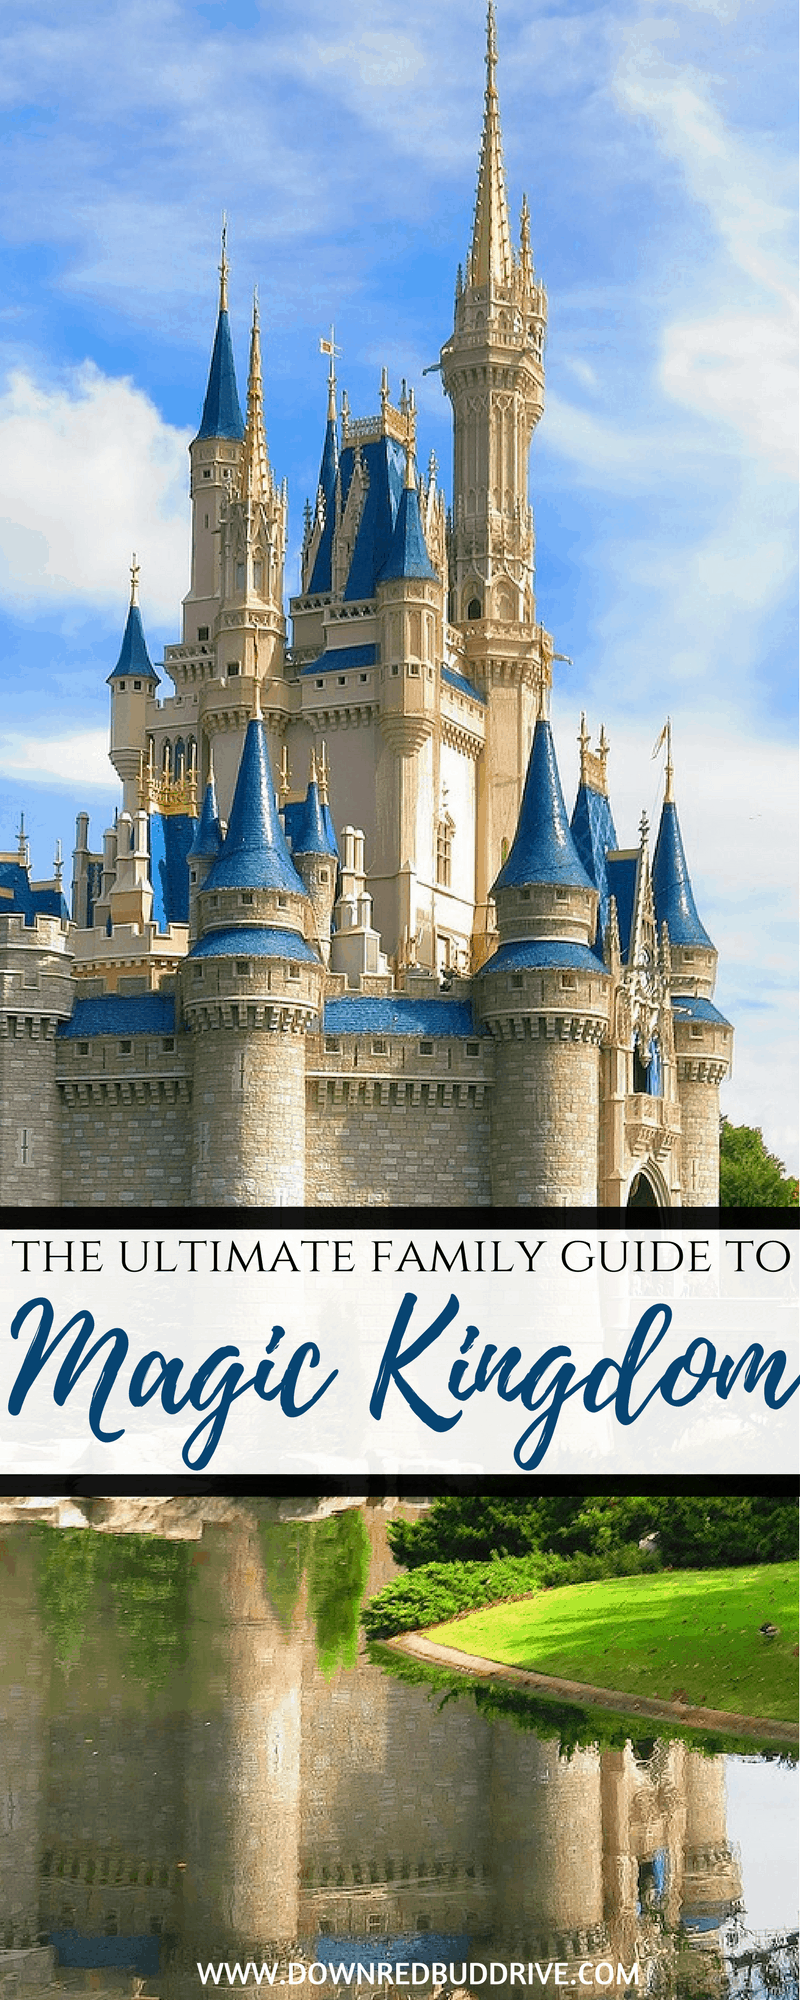 The Ultimate Family Guide to Disney World's Magic Kingdom   Magic Kingdom   Disney World   Disney World Magic Kingdom   Magic Kingdom Rides   Magic Kingdom Dining   Magic Kingdom Fast Pass   Down Redbud Drive   #disneyworld #magickingdom #disneyvacation